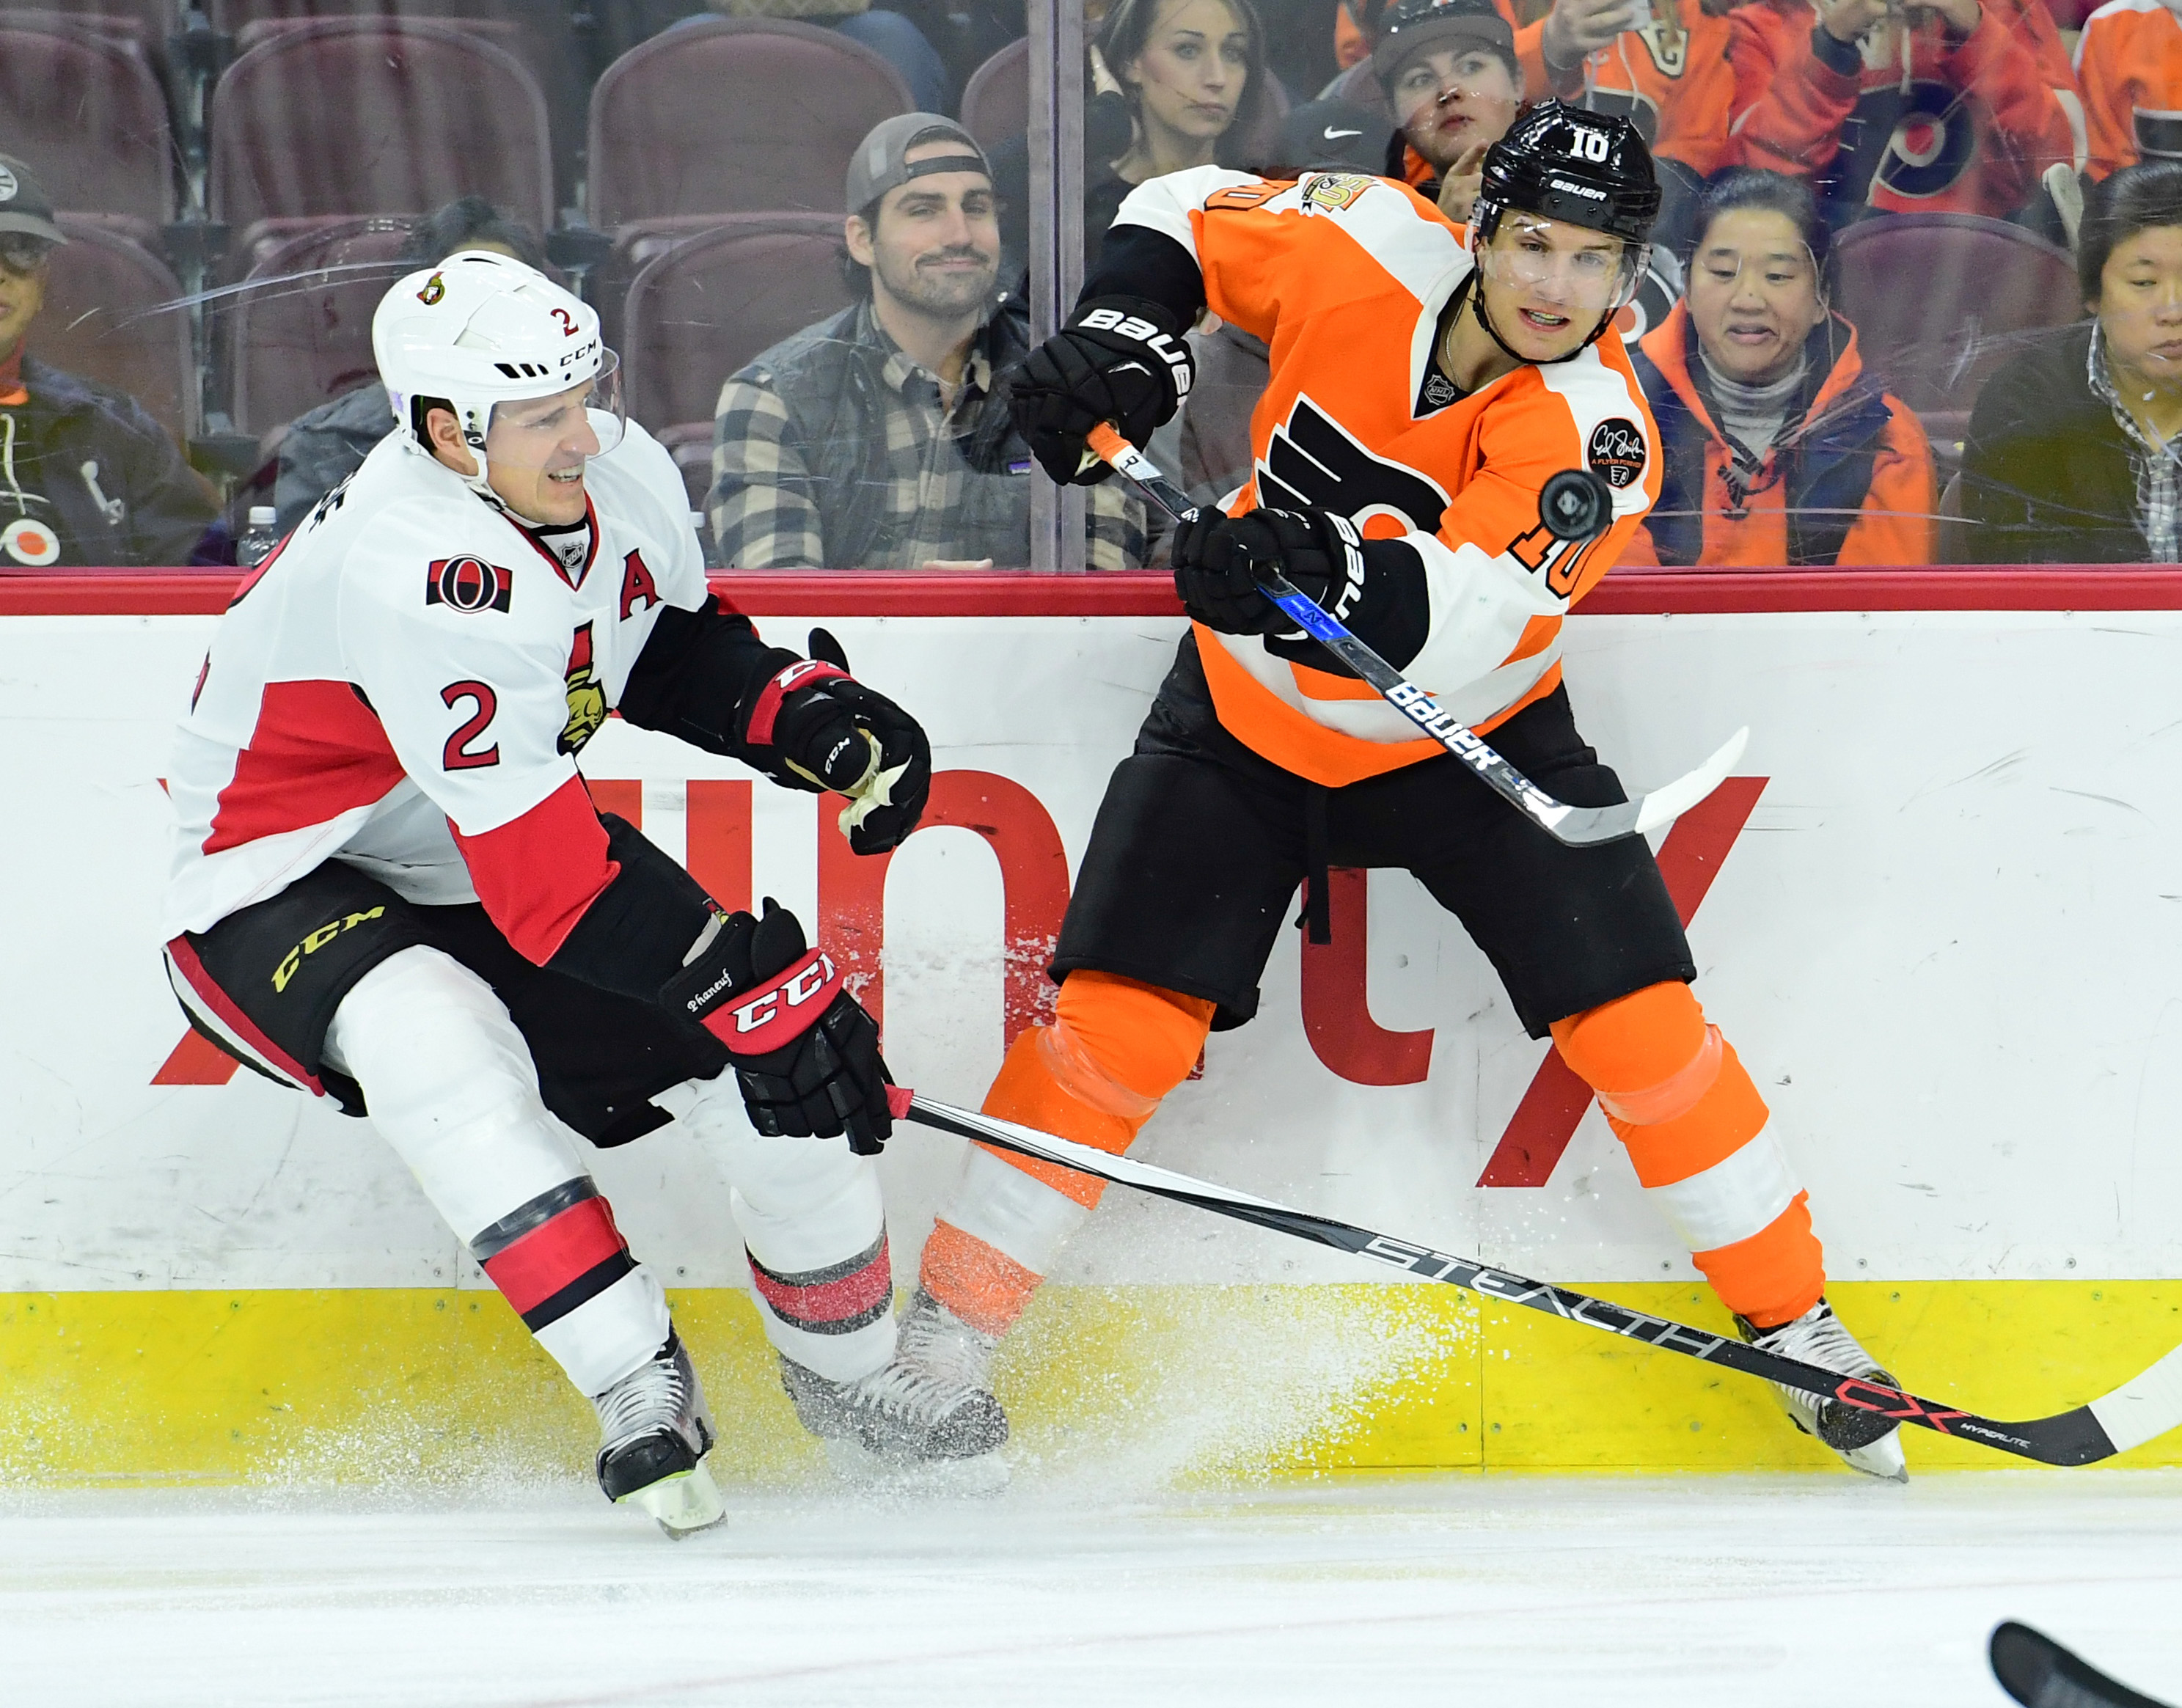 9679972-nhl-ottawa-senators-at-philadelphia-flyers